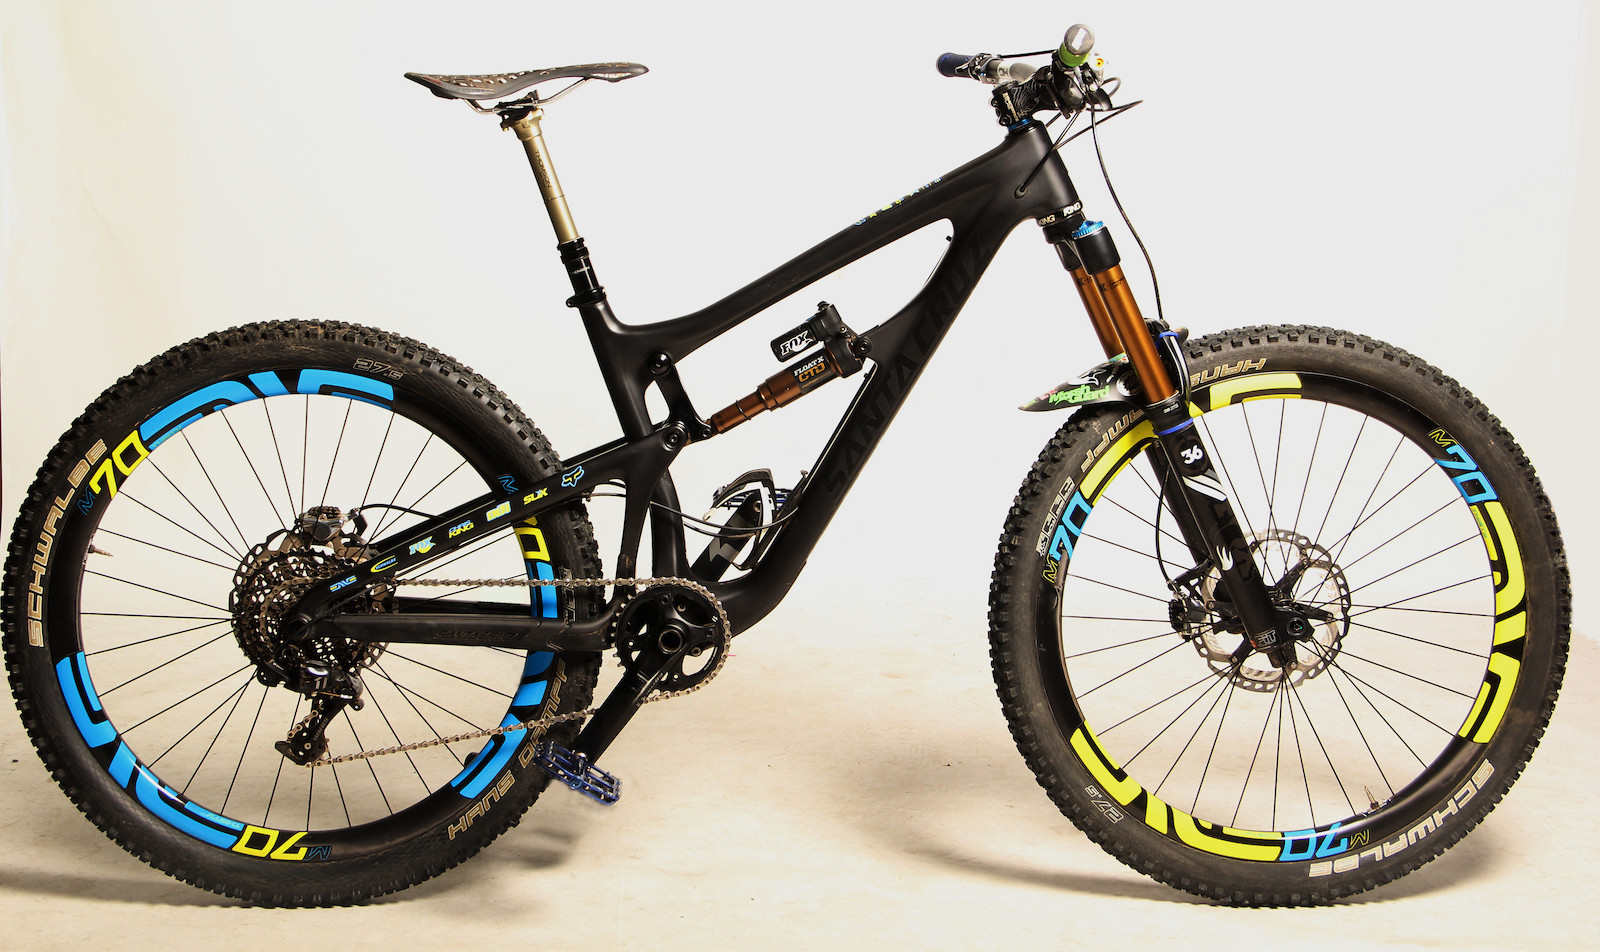 2015 Santa Cruz Nomad - Eden Bicycles Edition